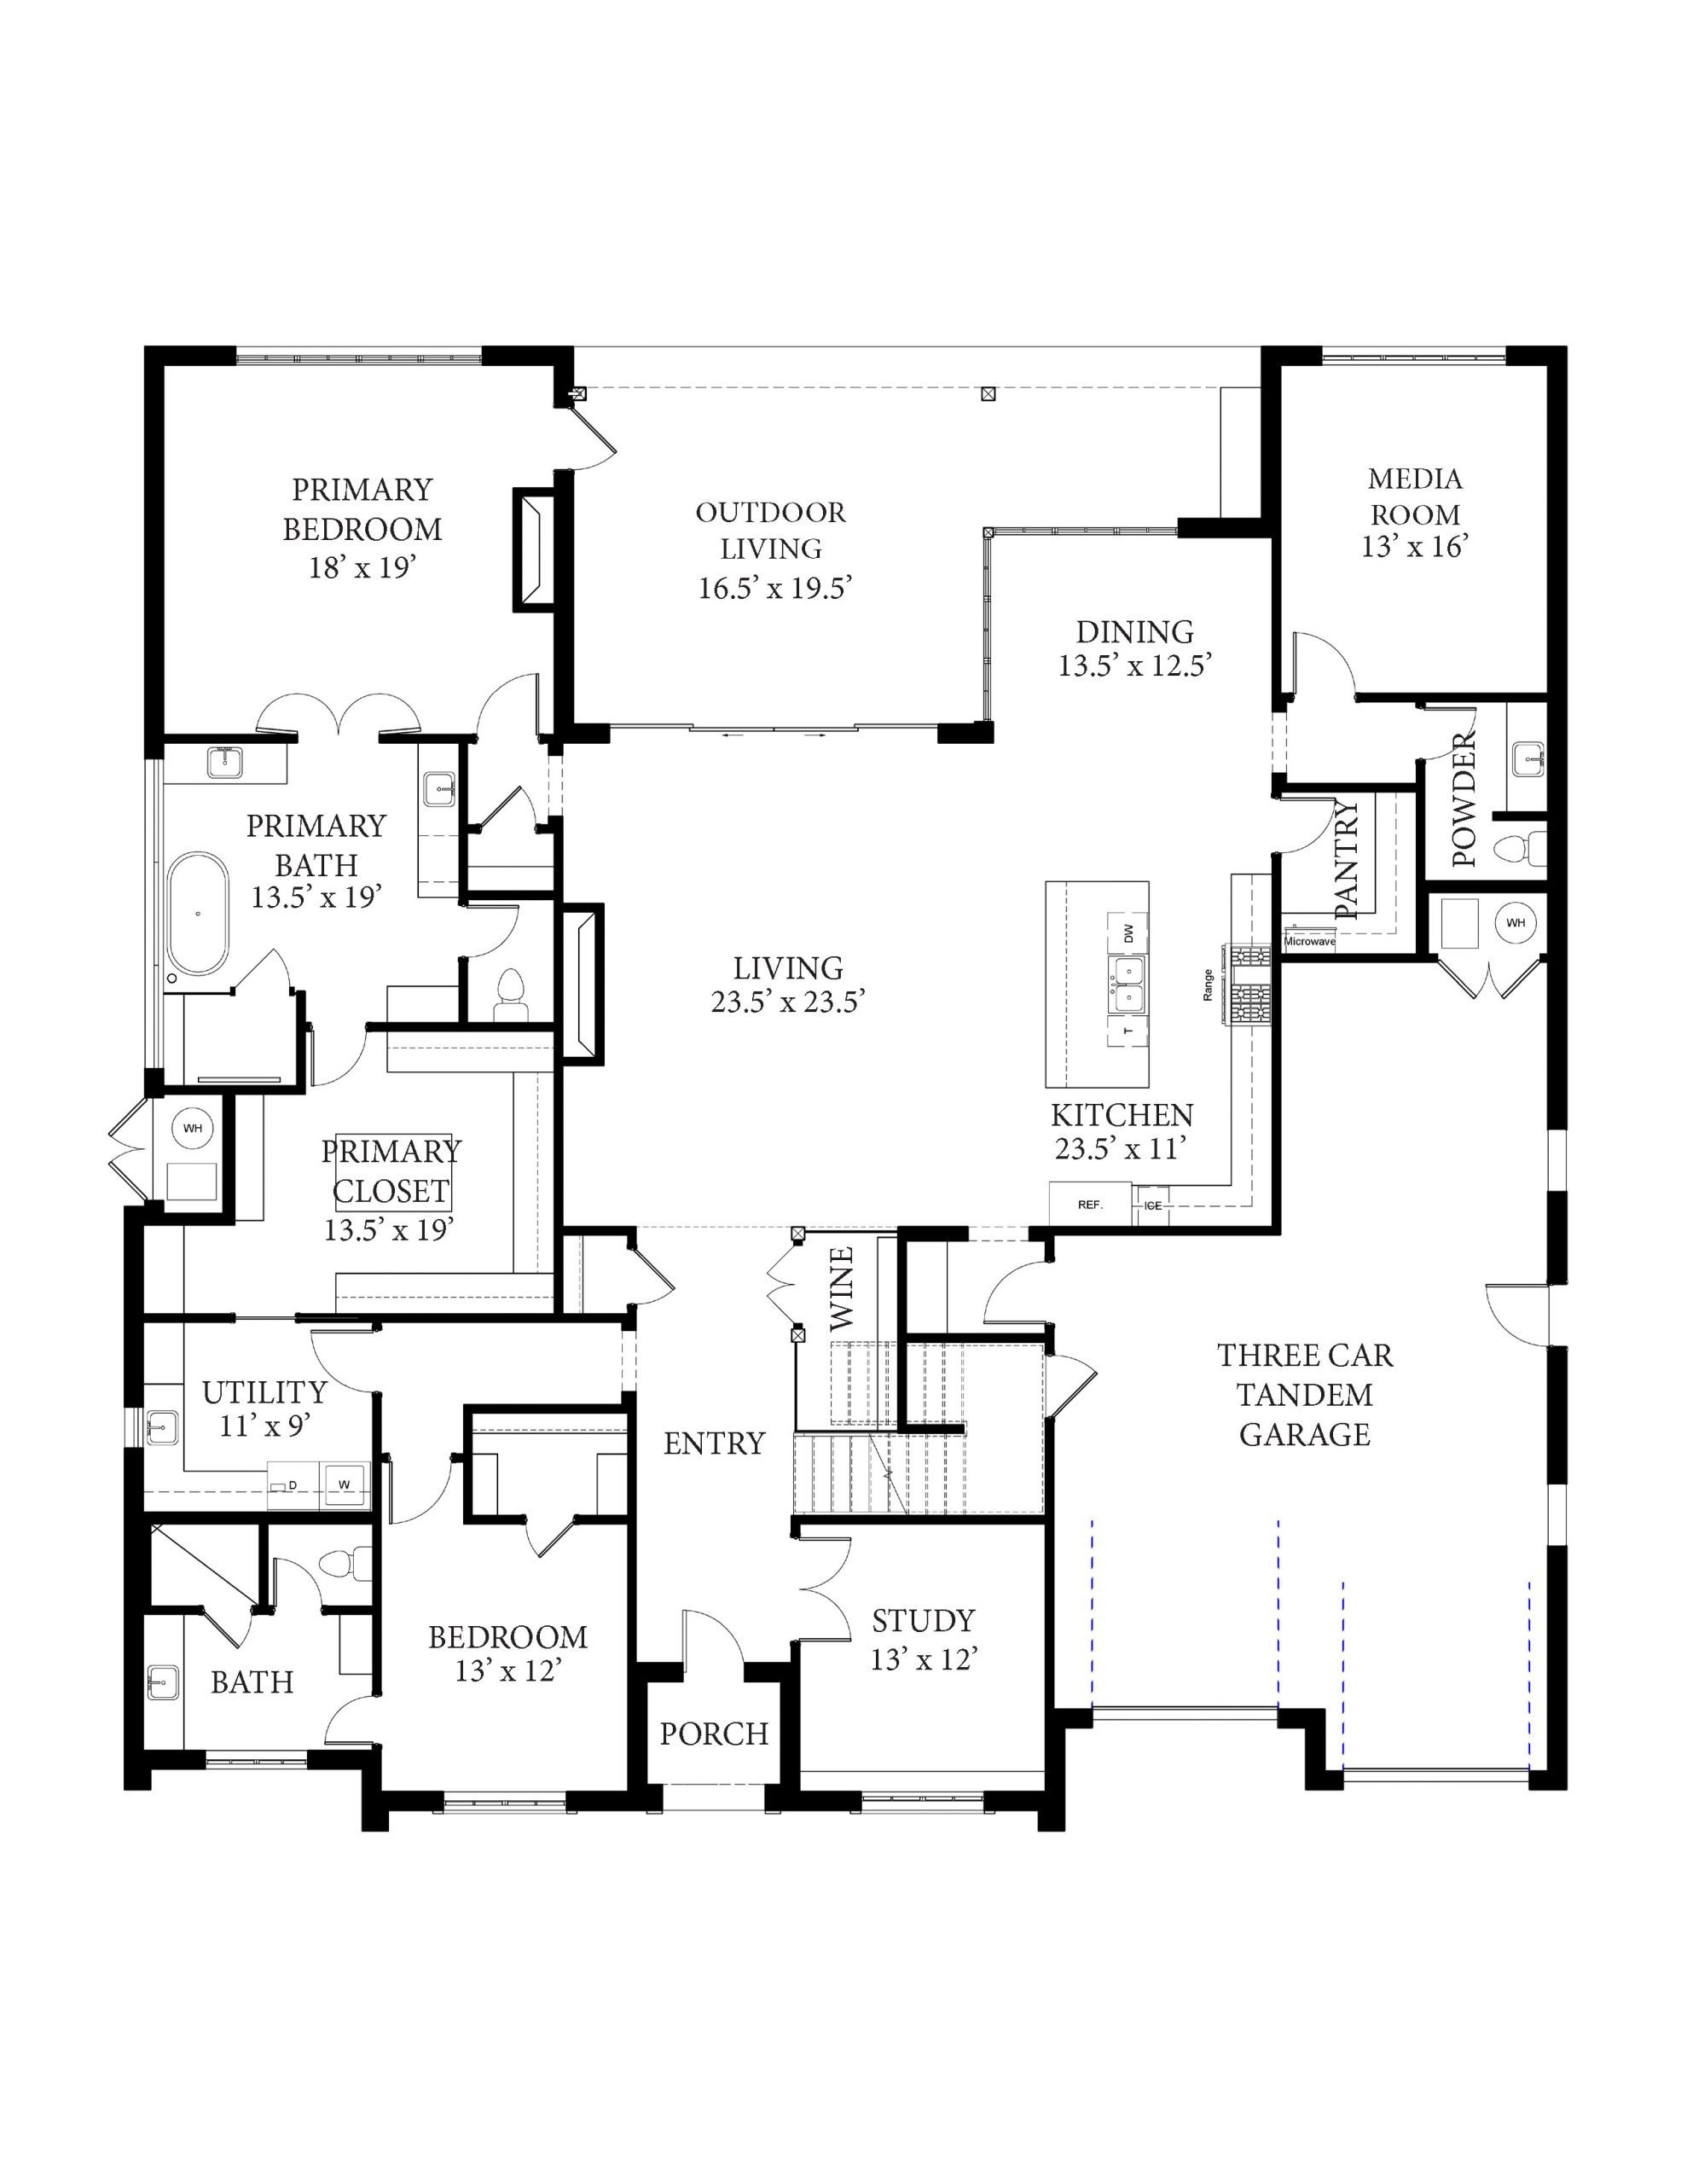 920 N.W. 154th Floor Plans_Page_1